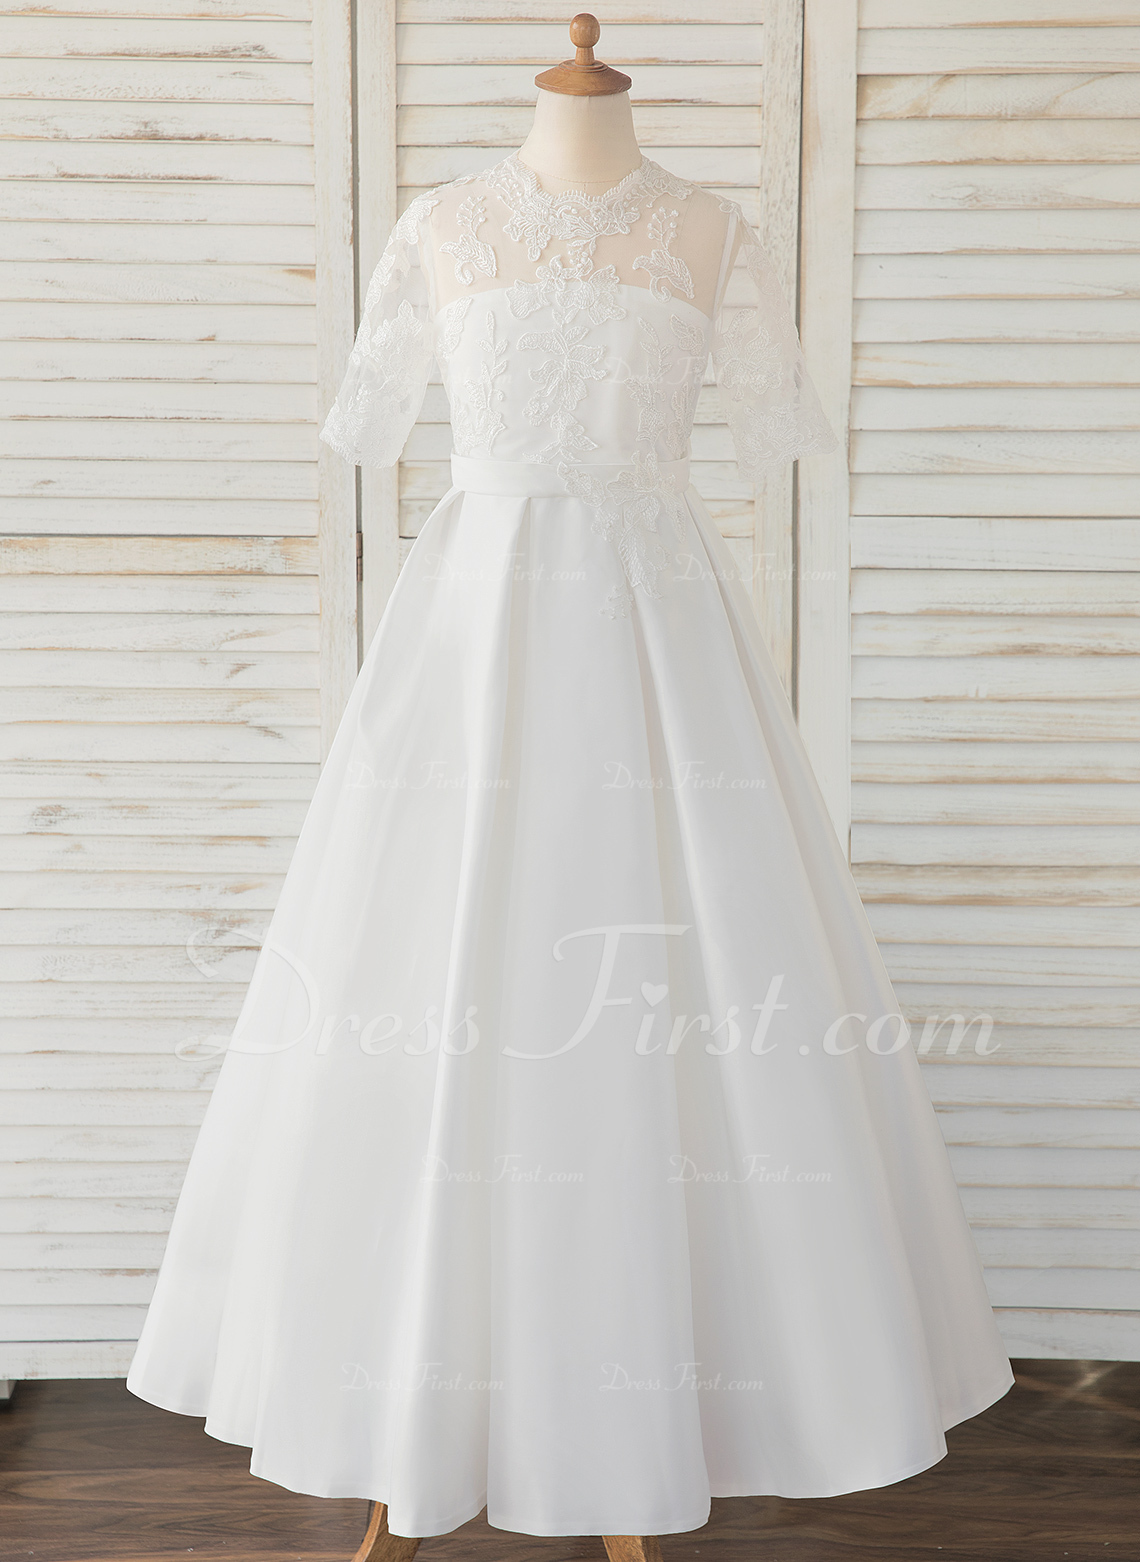 a49e4ca4504 A-Line Floor-length Flower Girl Dress - Satin Lace 1 2 Sleeves Scoop Neck   183556